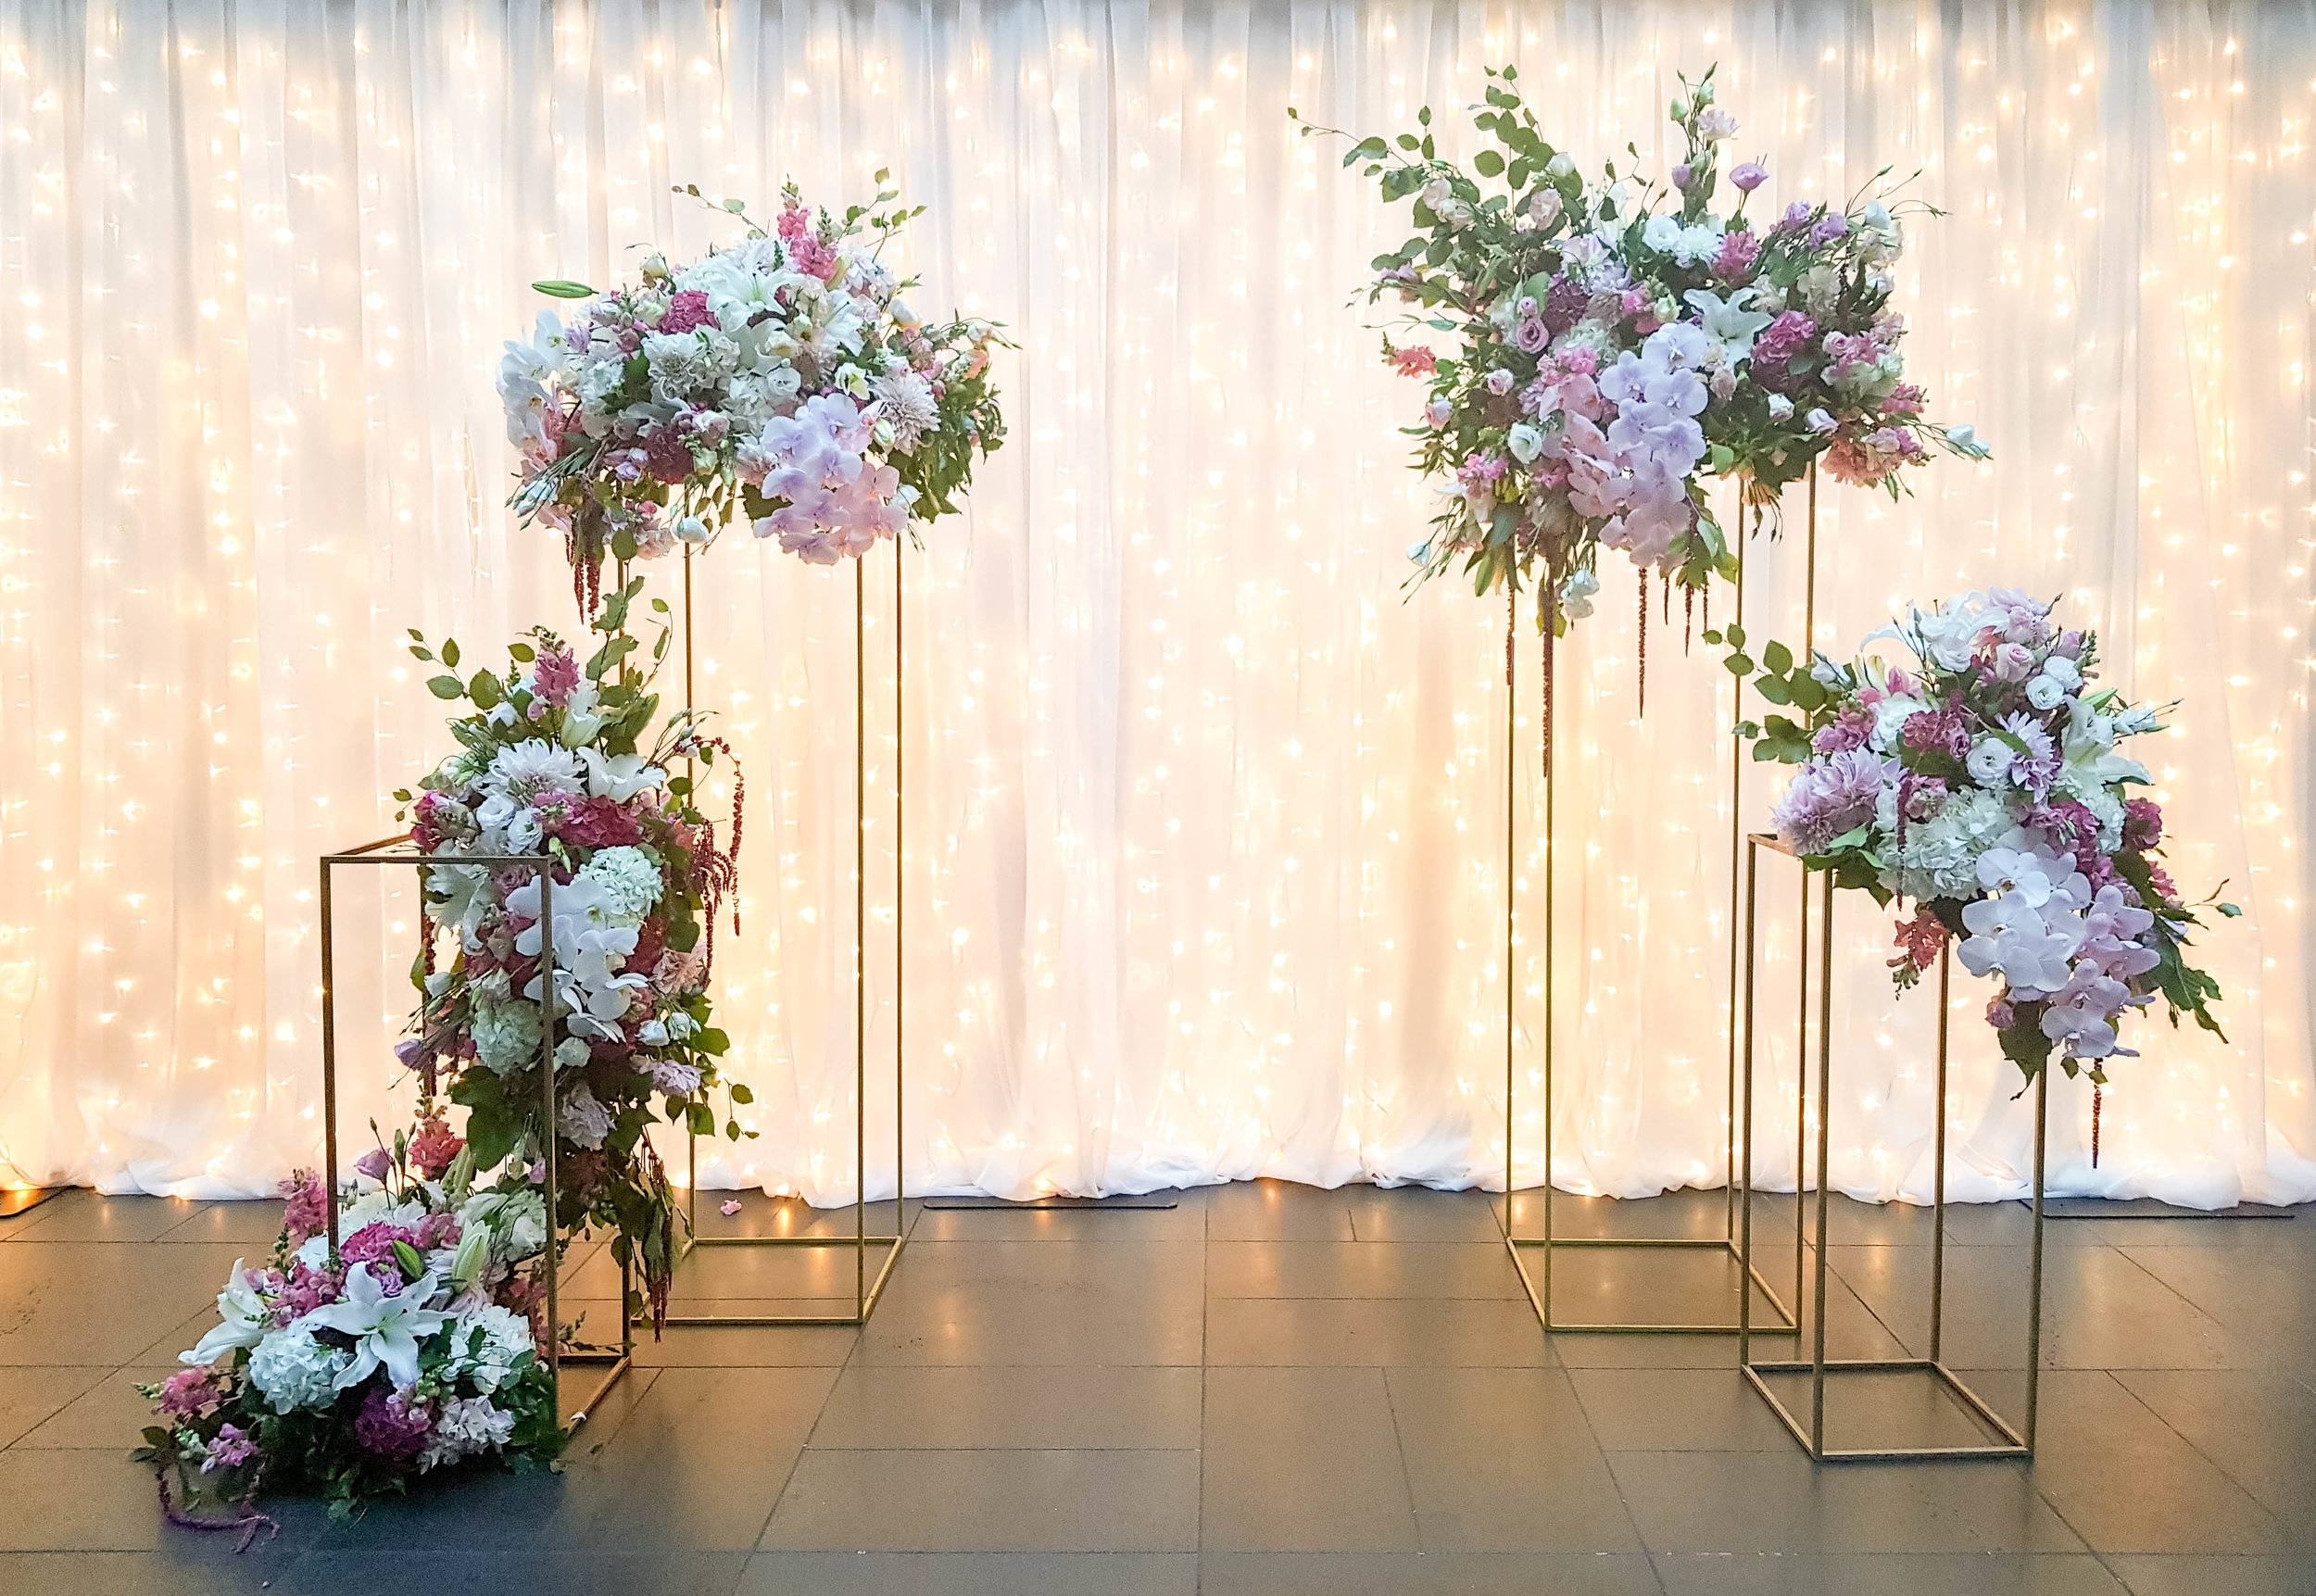 Wedding backdrops are a great option if you are a bride or groom that wants to pull focus the entire night! -